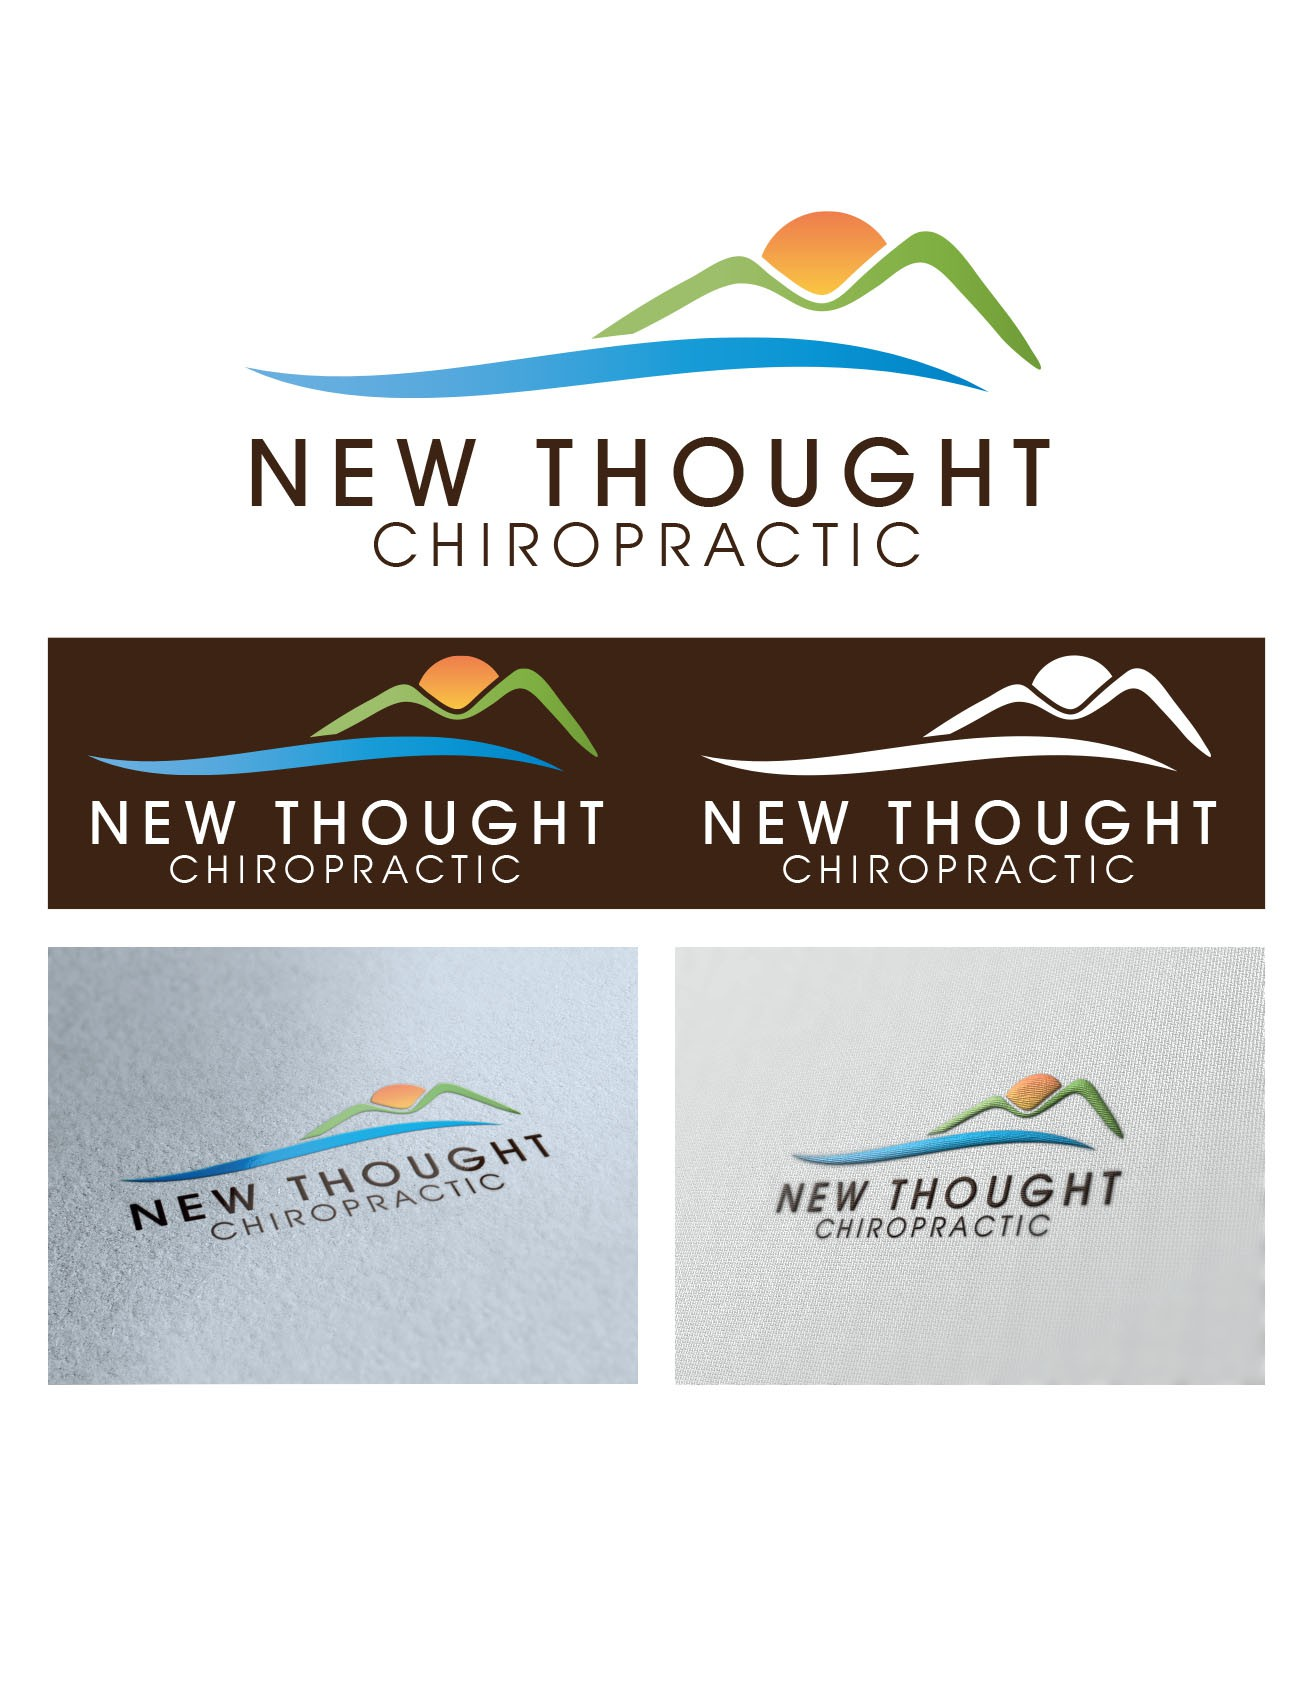 Help New Thought Chiropractic with a new logo